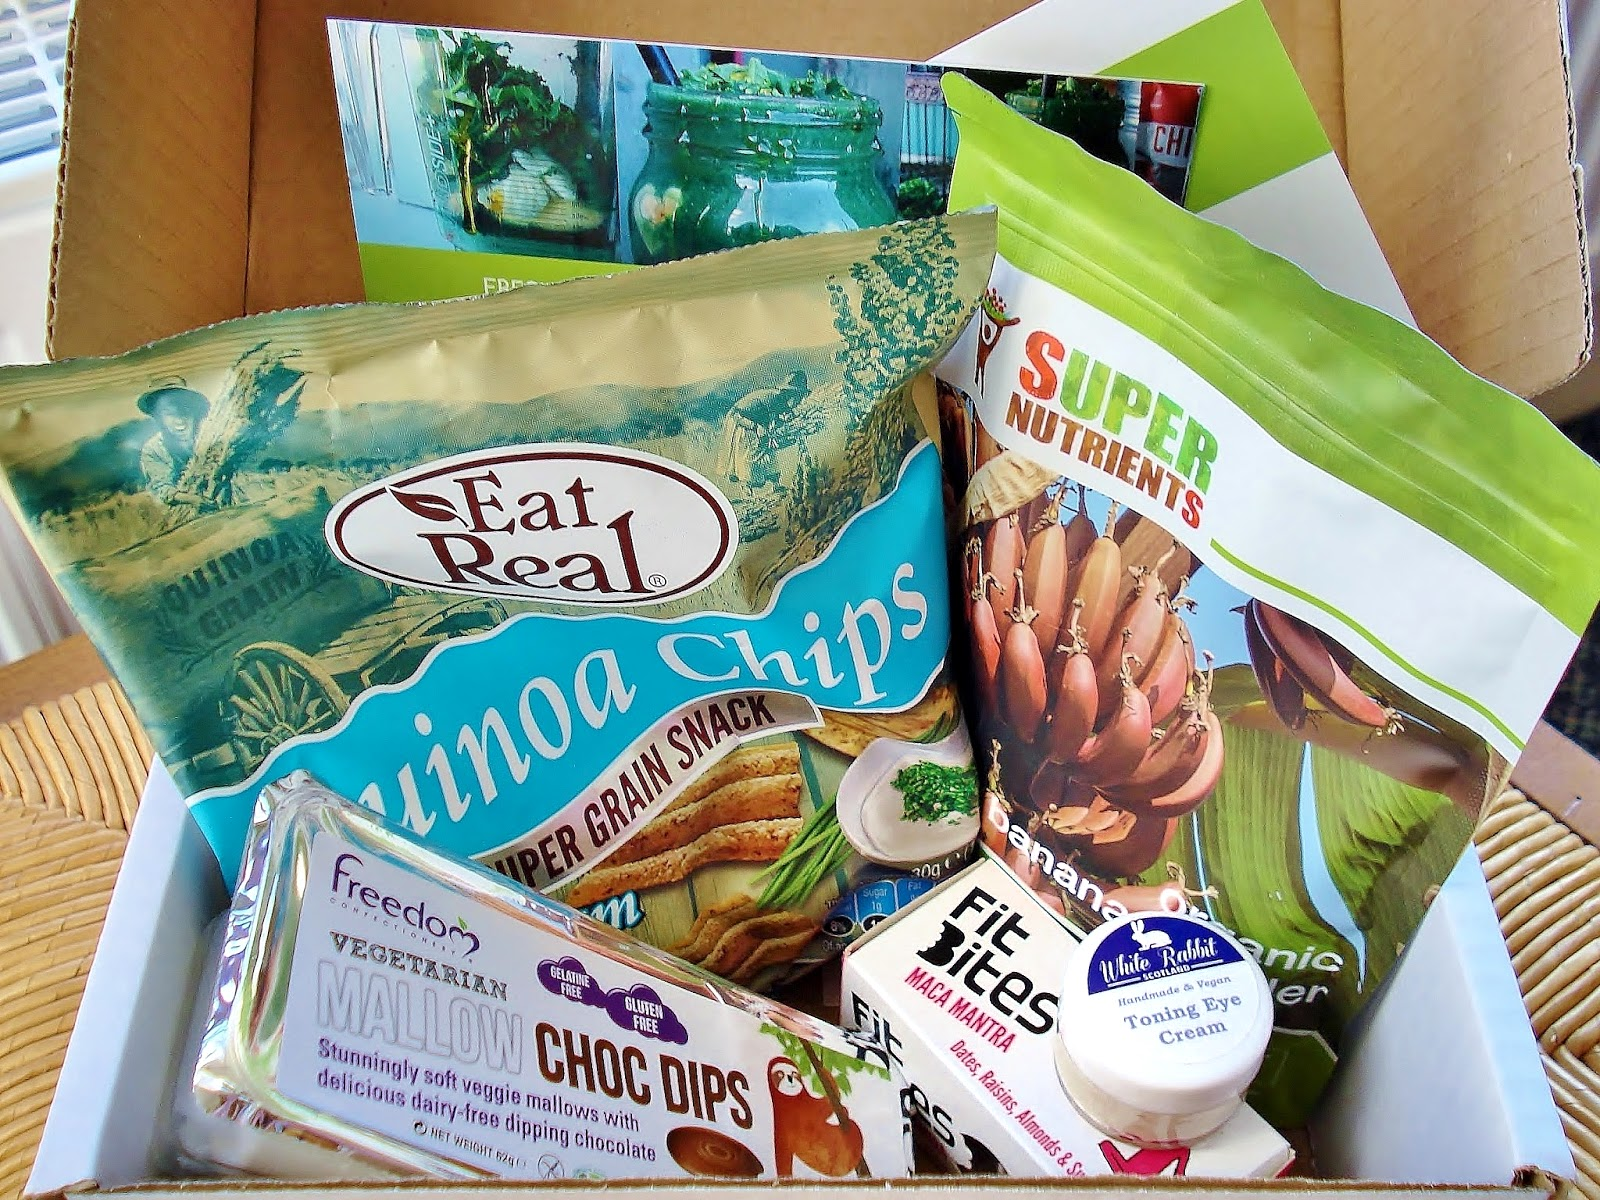 Contents of my Vegan Kind February box